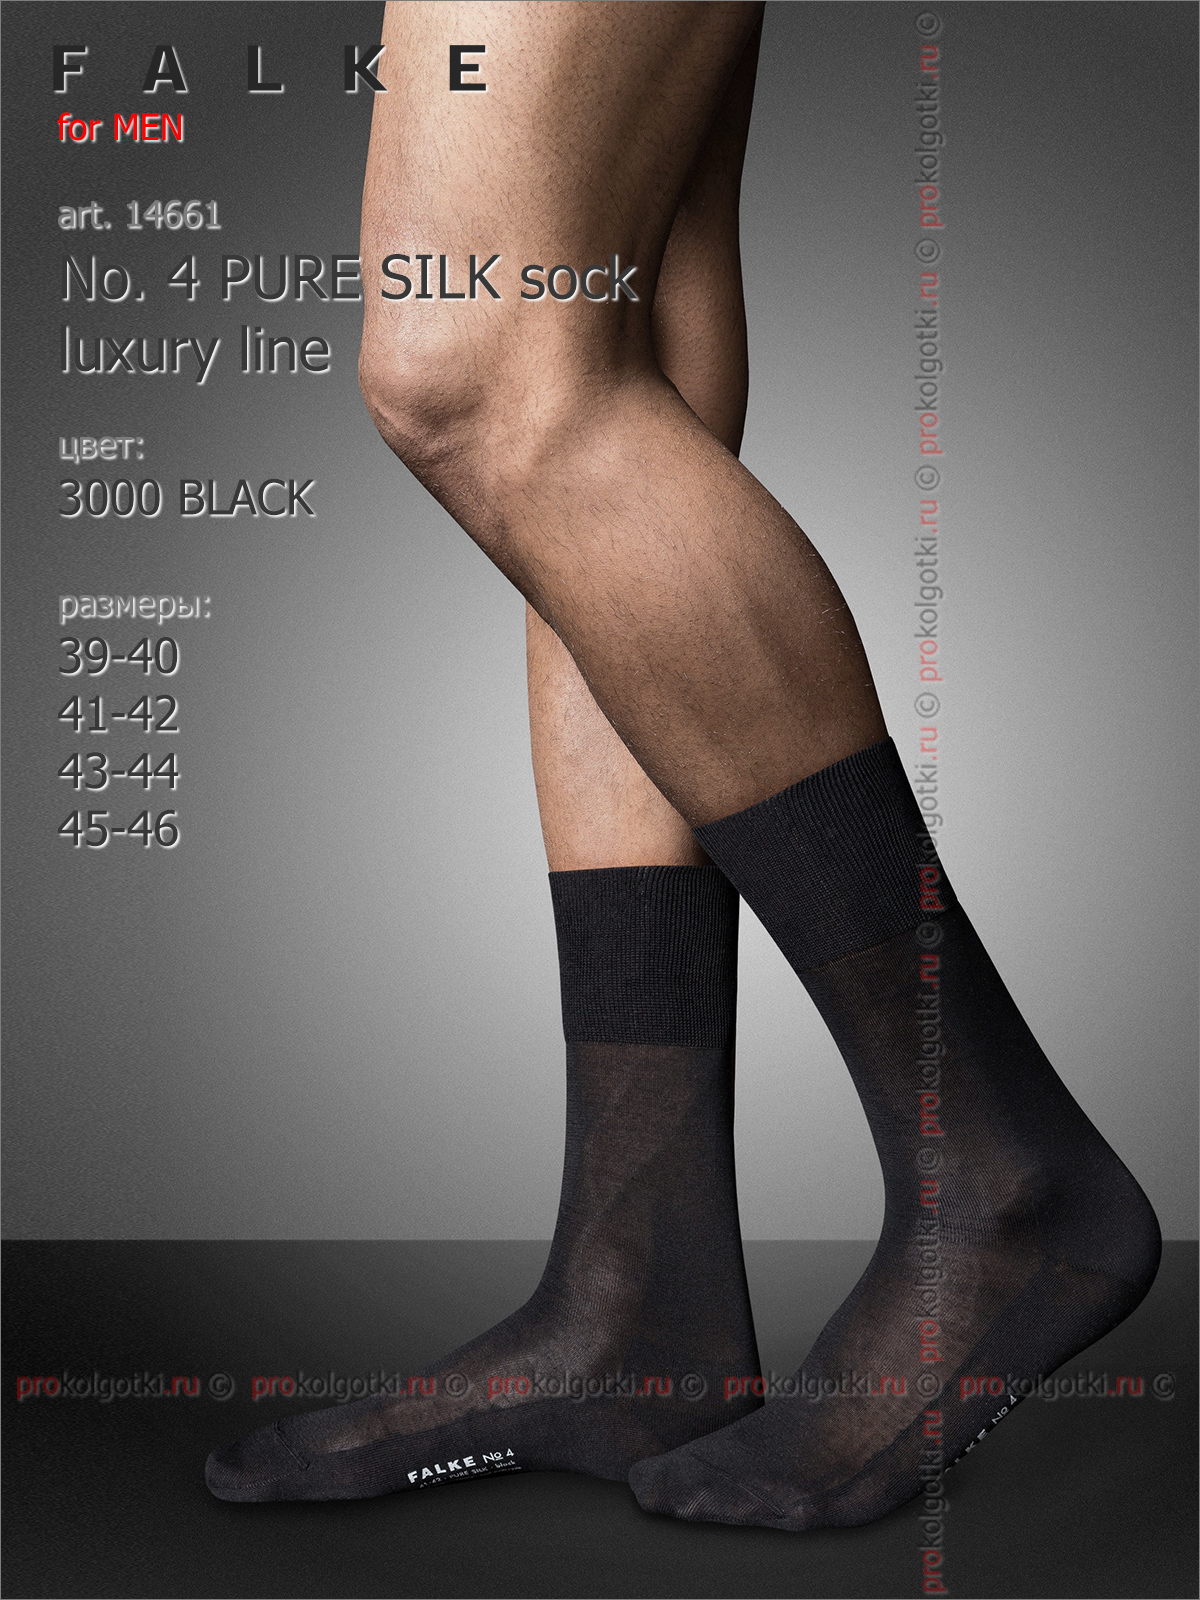 Носки Falke Art. 14661 No. 4 Pure Silk Sock - фото 1